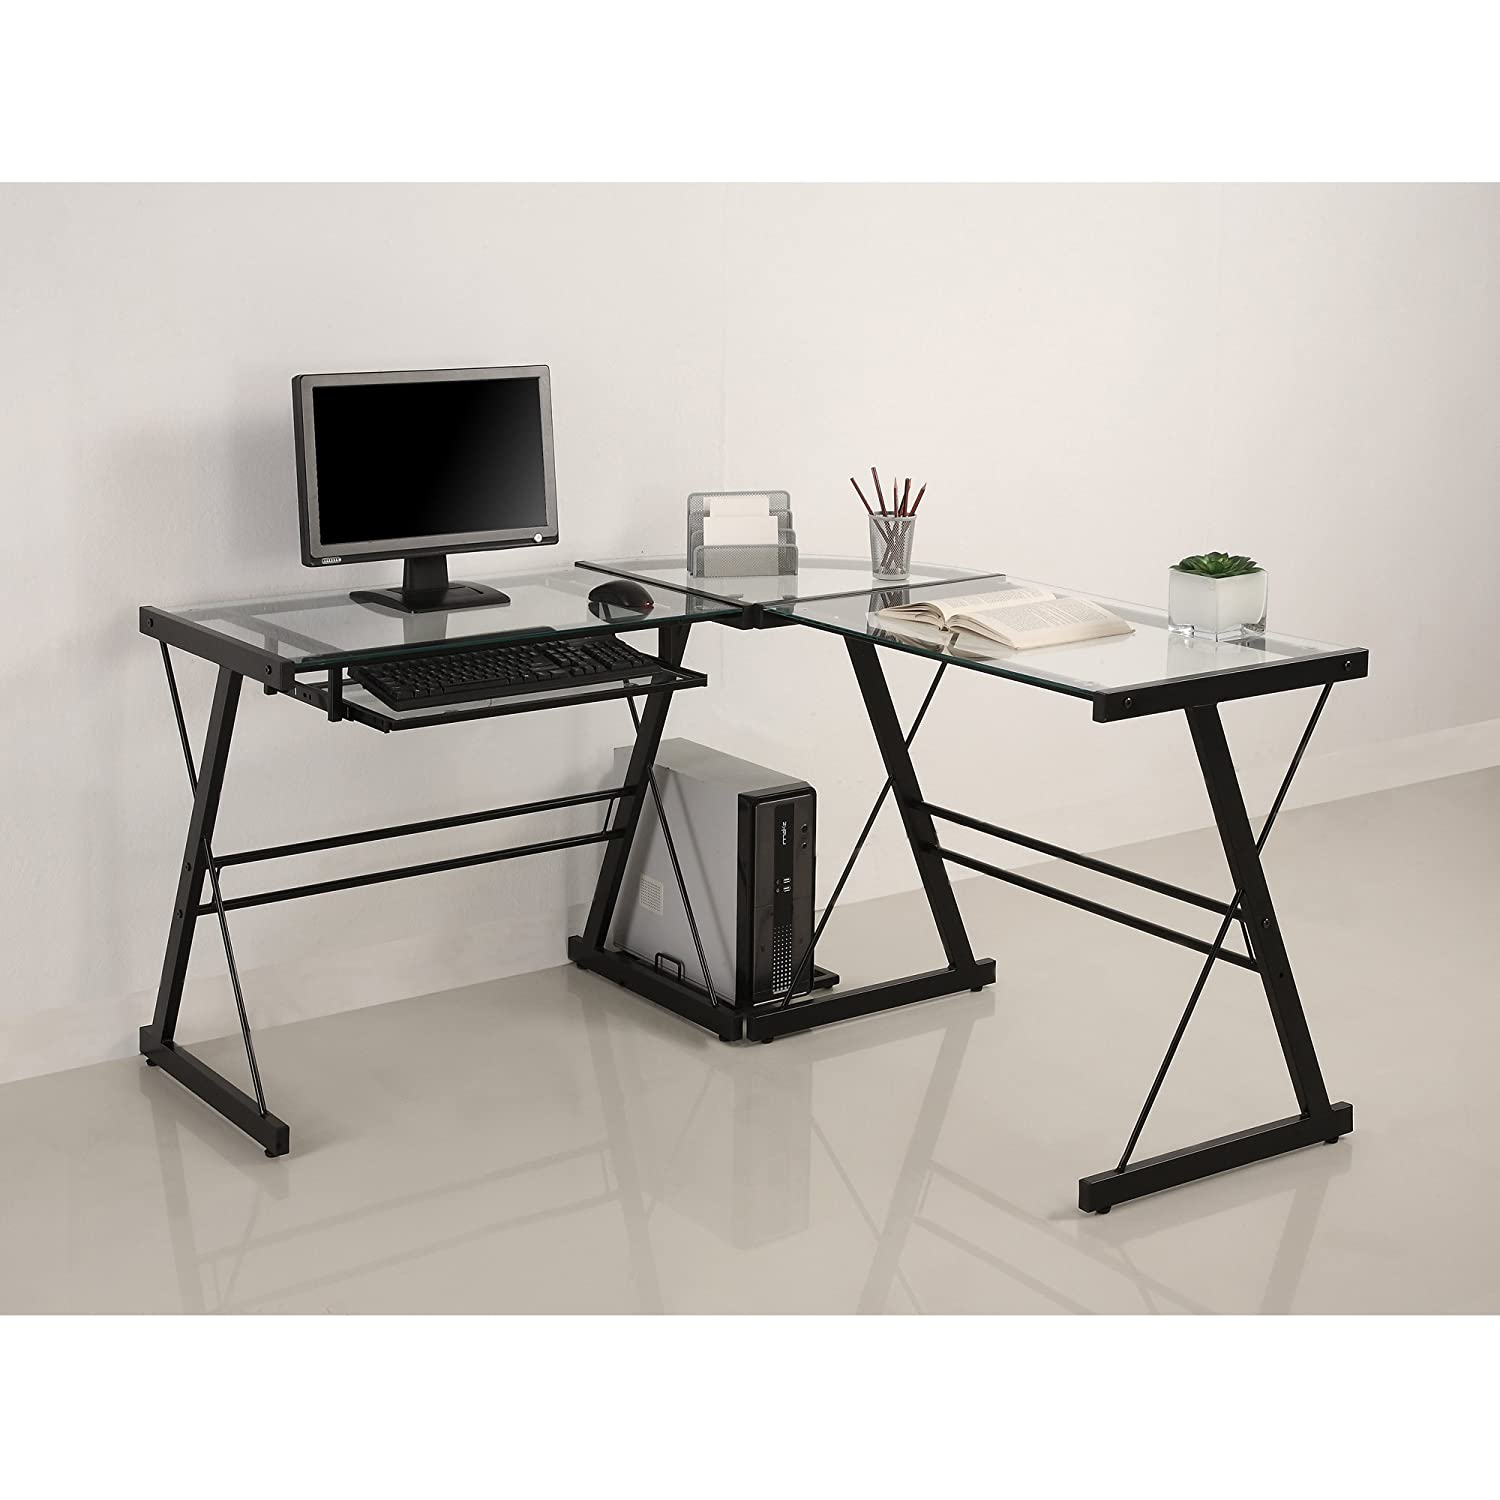 amazoncom walker edison piece contemporary desk multi kitchen  dining. amazoncom walker edison piece contemporary desk multi